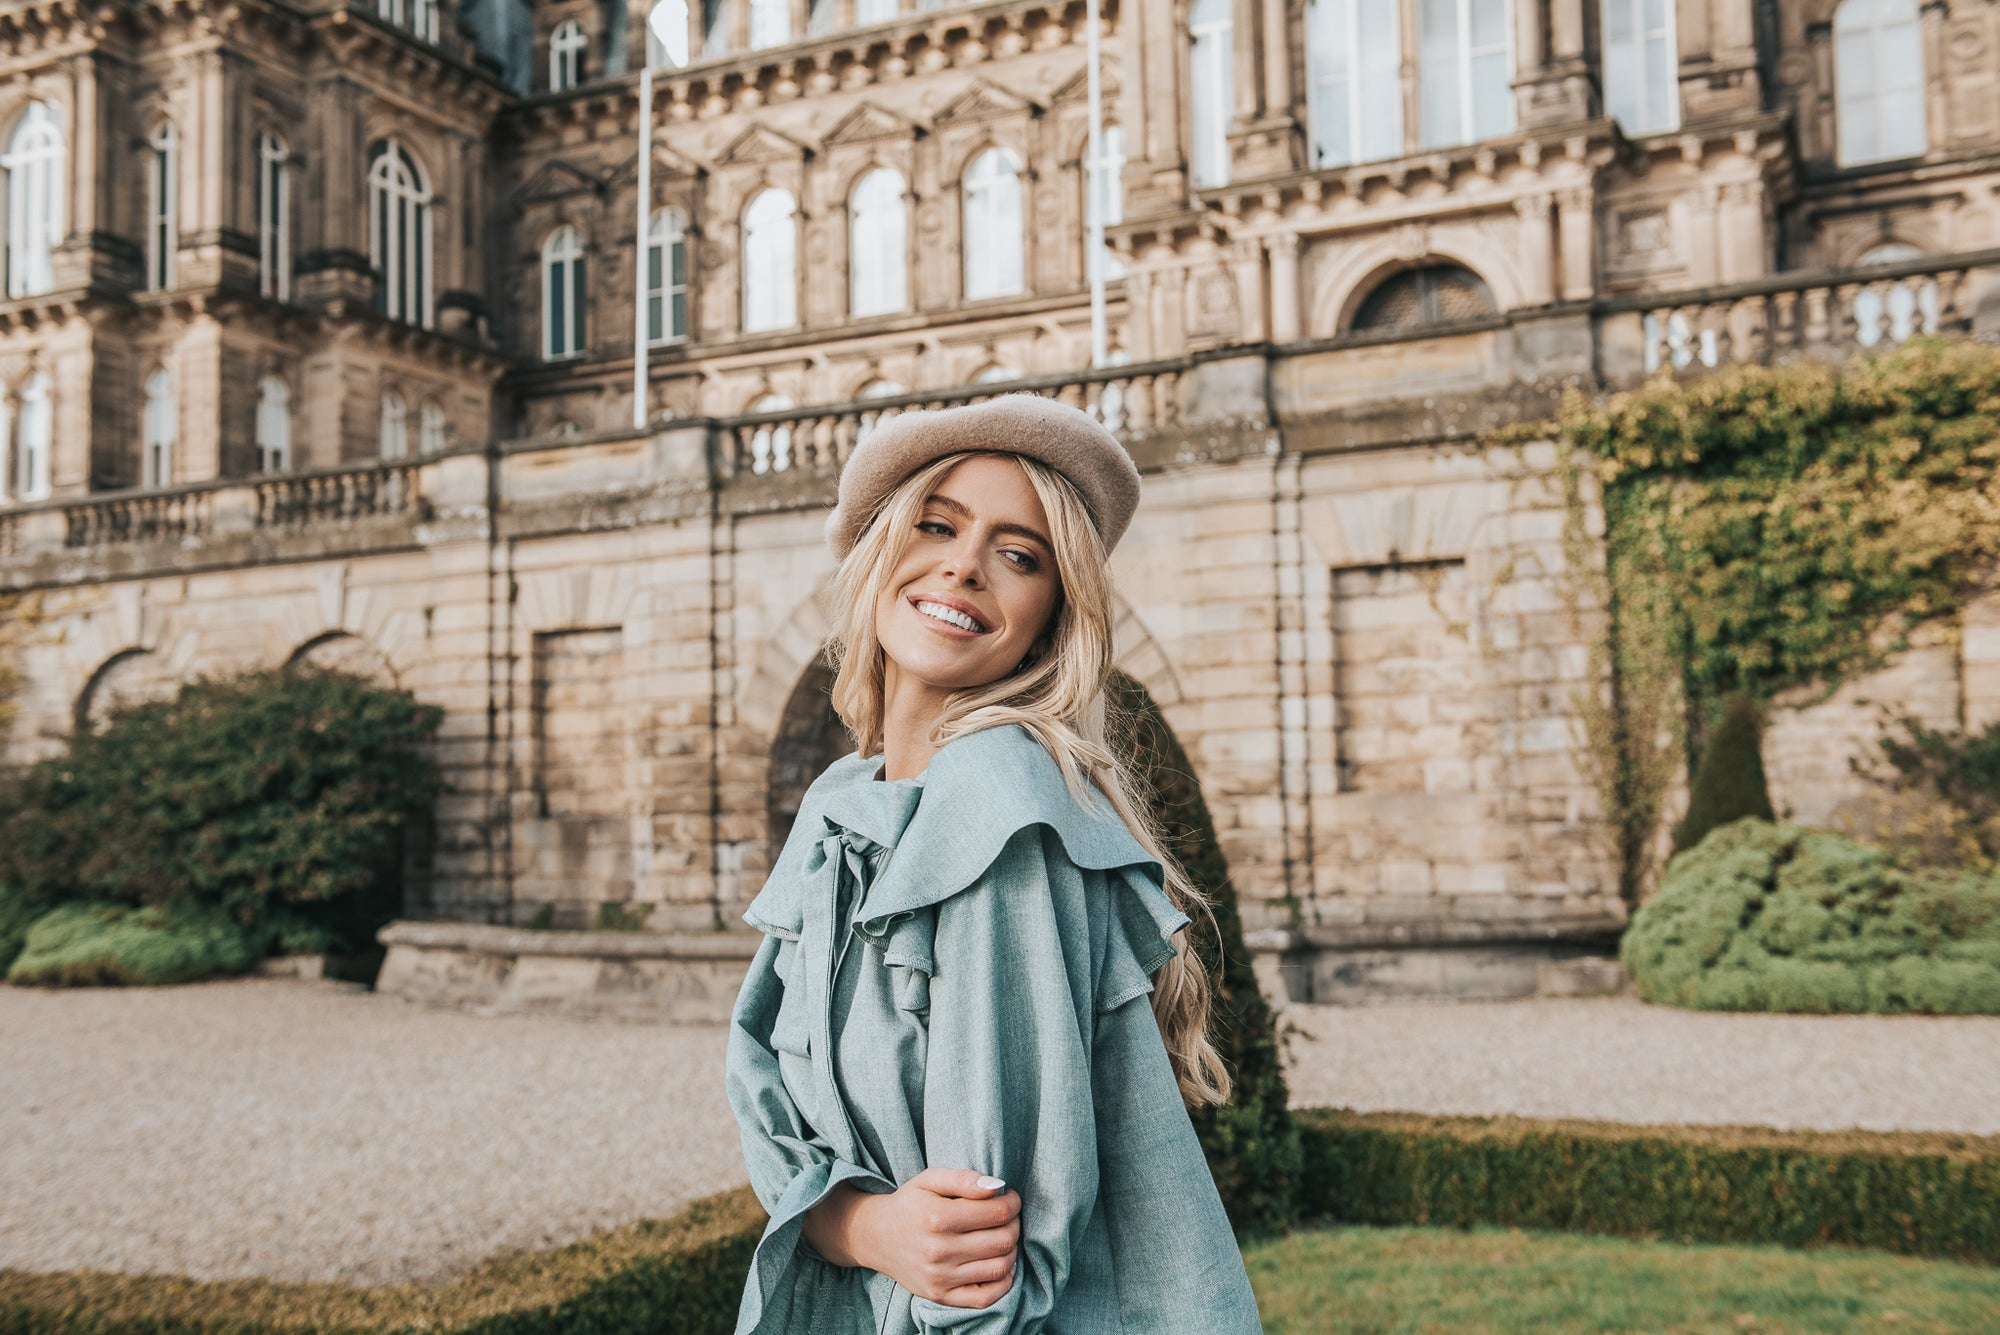 Emily in Paris vibes, we love the Marcella top styles with a beret! Delightfully feminine, easy cut to be worn with a skinny jean or tucked into a tailored trouser - she can be dressed up or down